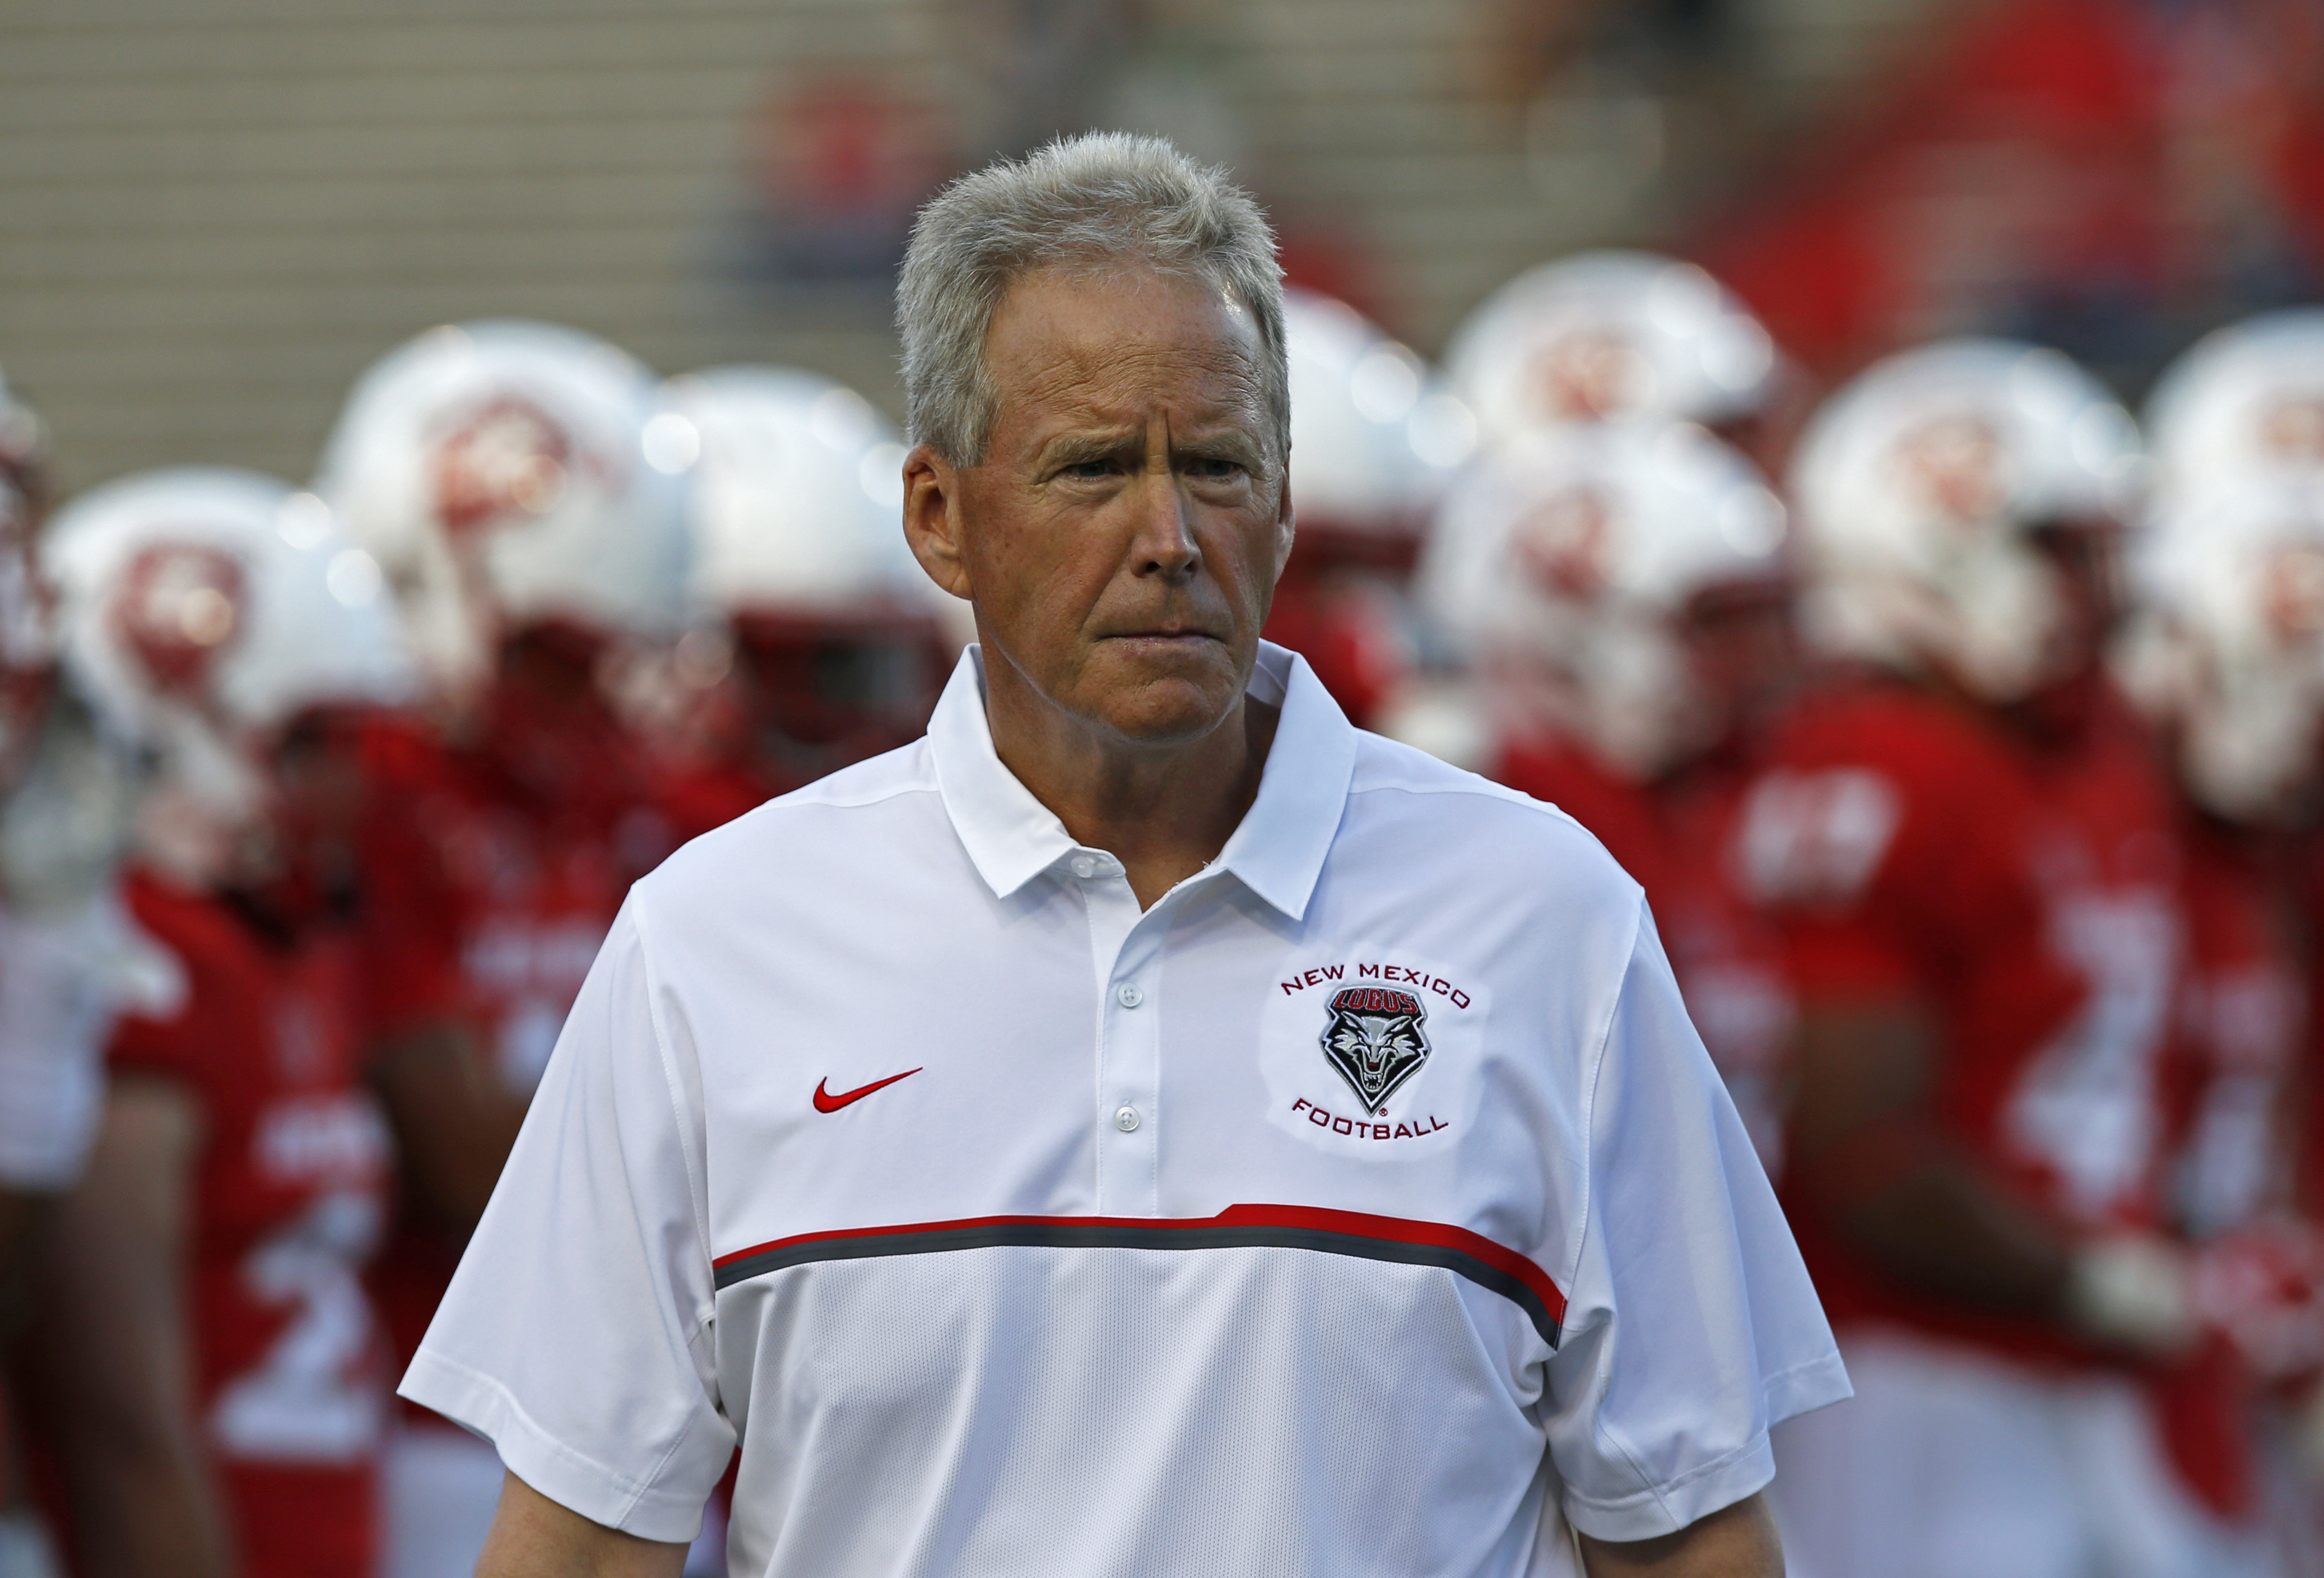 FILE - In this Sept. 1, 2016, file photo, New Mexico coach Bob Davie watches players warm up for the team's NCAA college football game against South Dakota in Albuquerque, N.M. New Mexico faces Air Force on Saturday in Dallas. (AP Photo/Andres Leighton, F